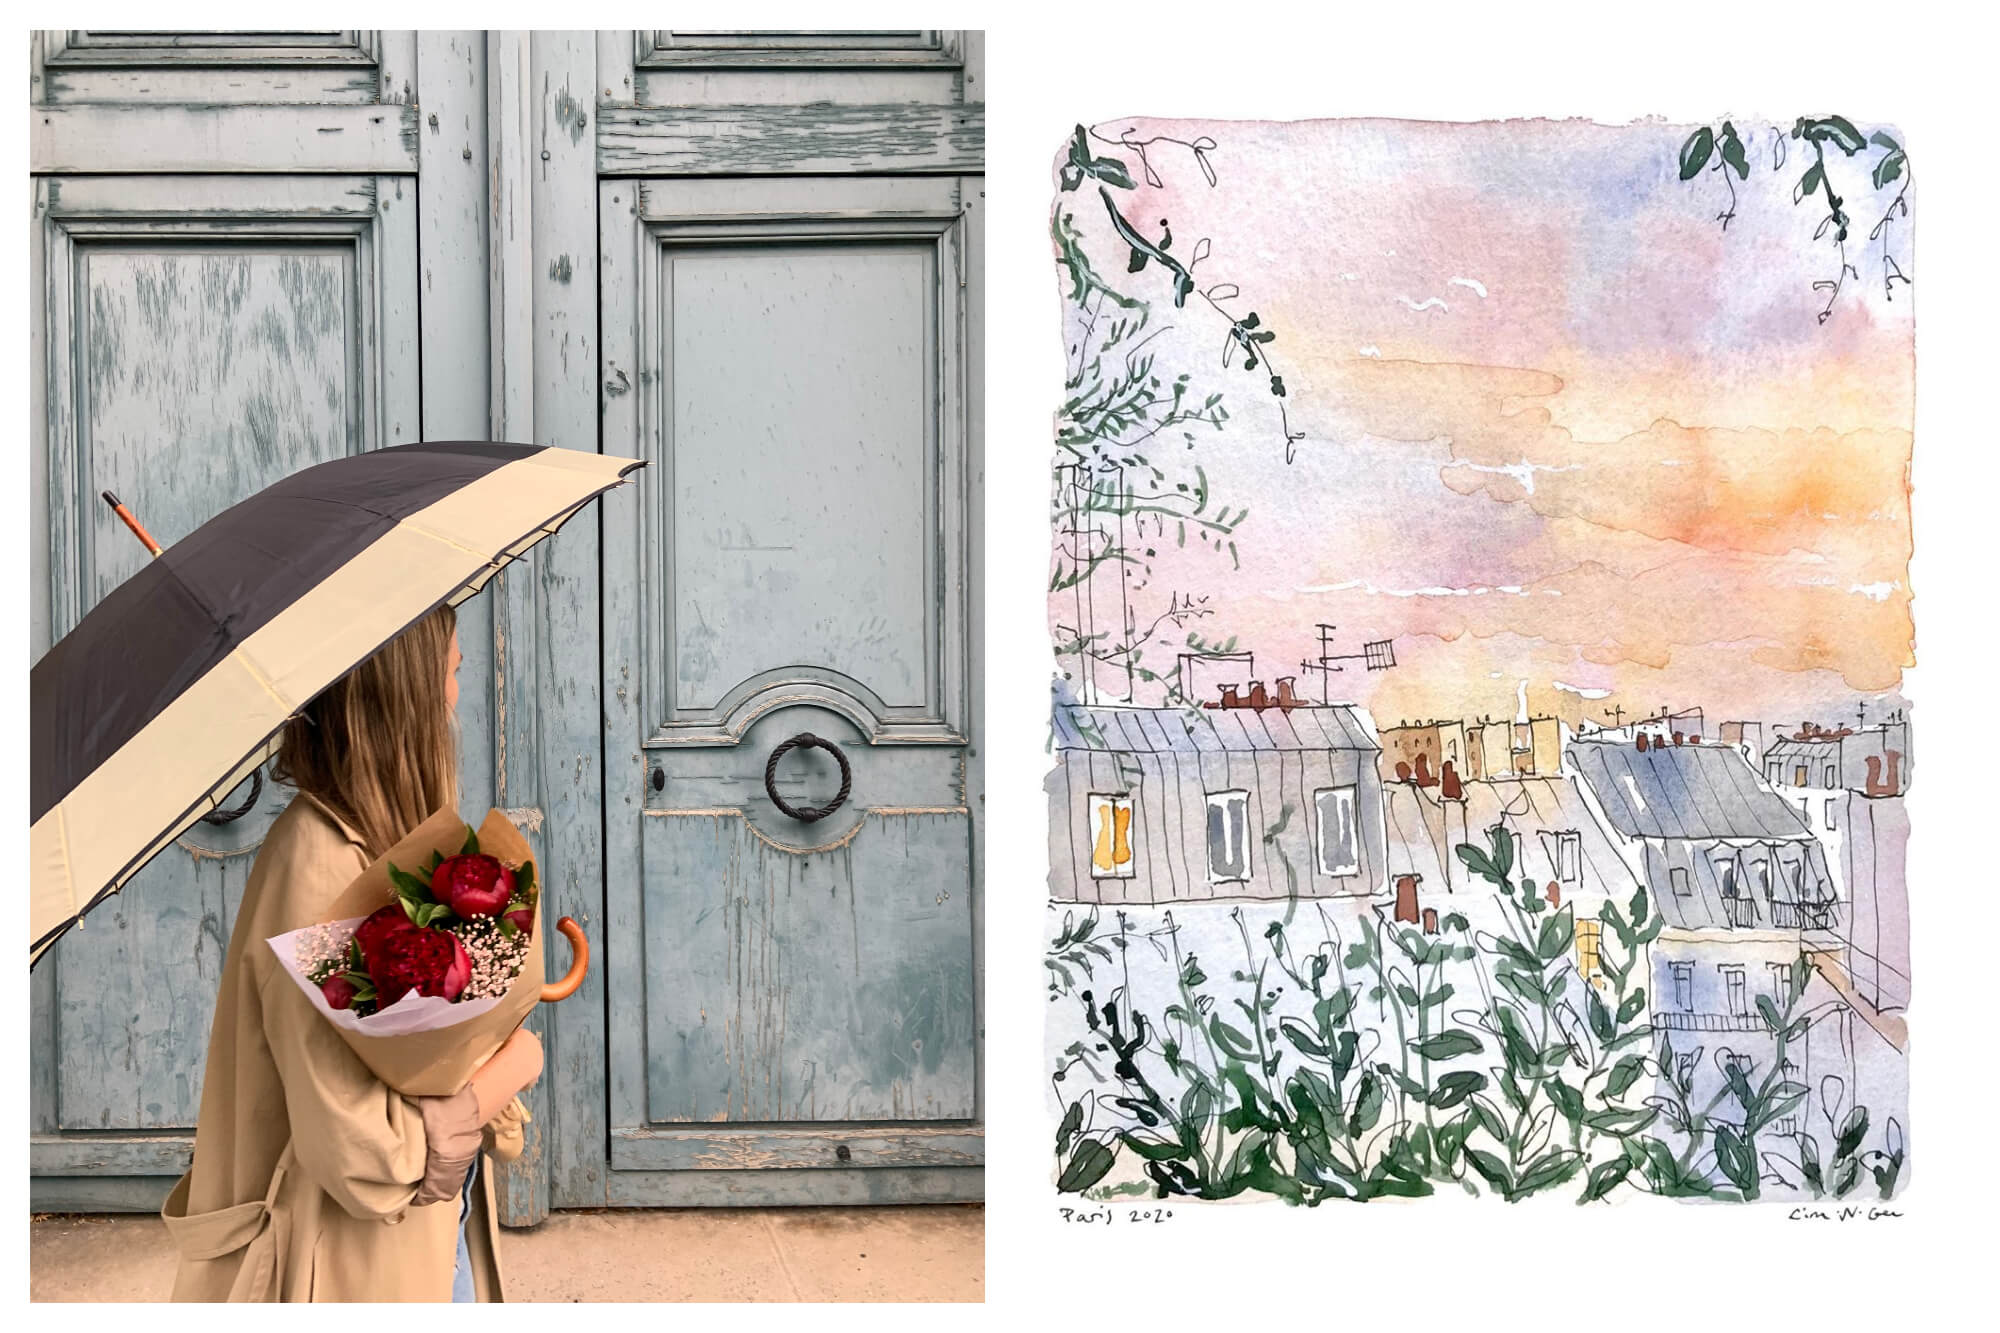 Left: Lina Nordin Gee enjoying a perfect day in Paris, walking in front of an old door, her long blong hair worn loose, with red roses in her hand while carrying an umbrella and wearing a beige trench coat. Right: A watercolor painting in pastel colors of Parisian roof tops with green trees on the edges of the image.